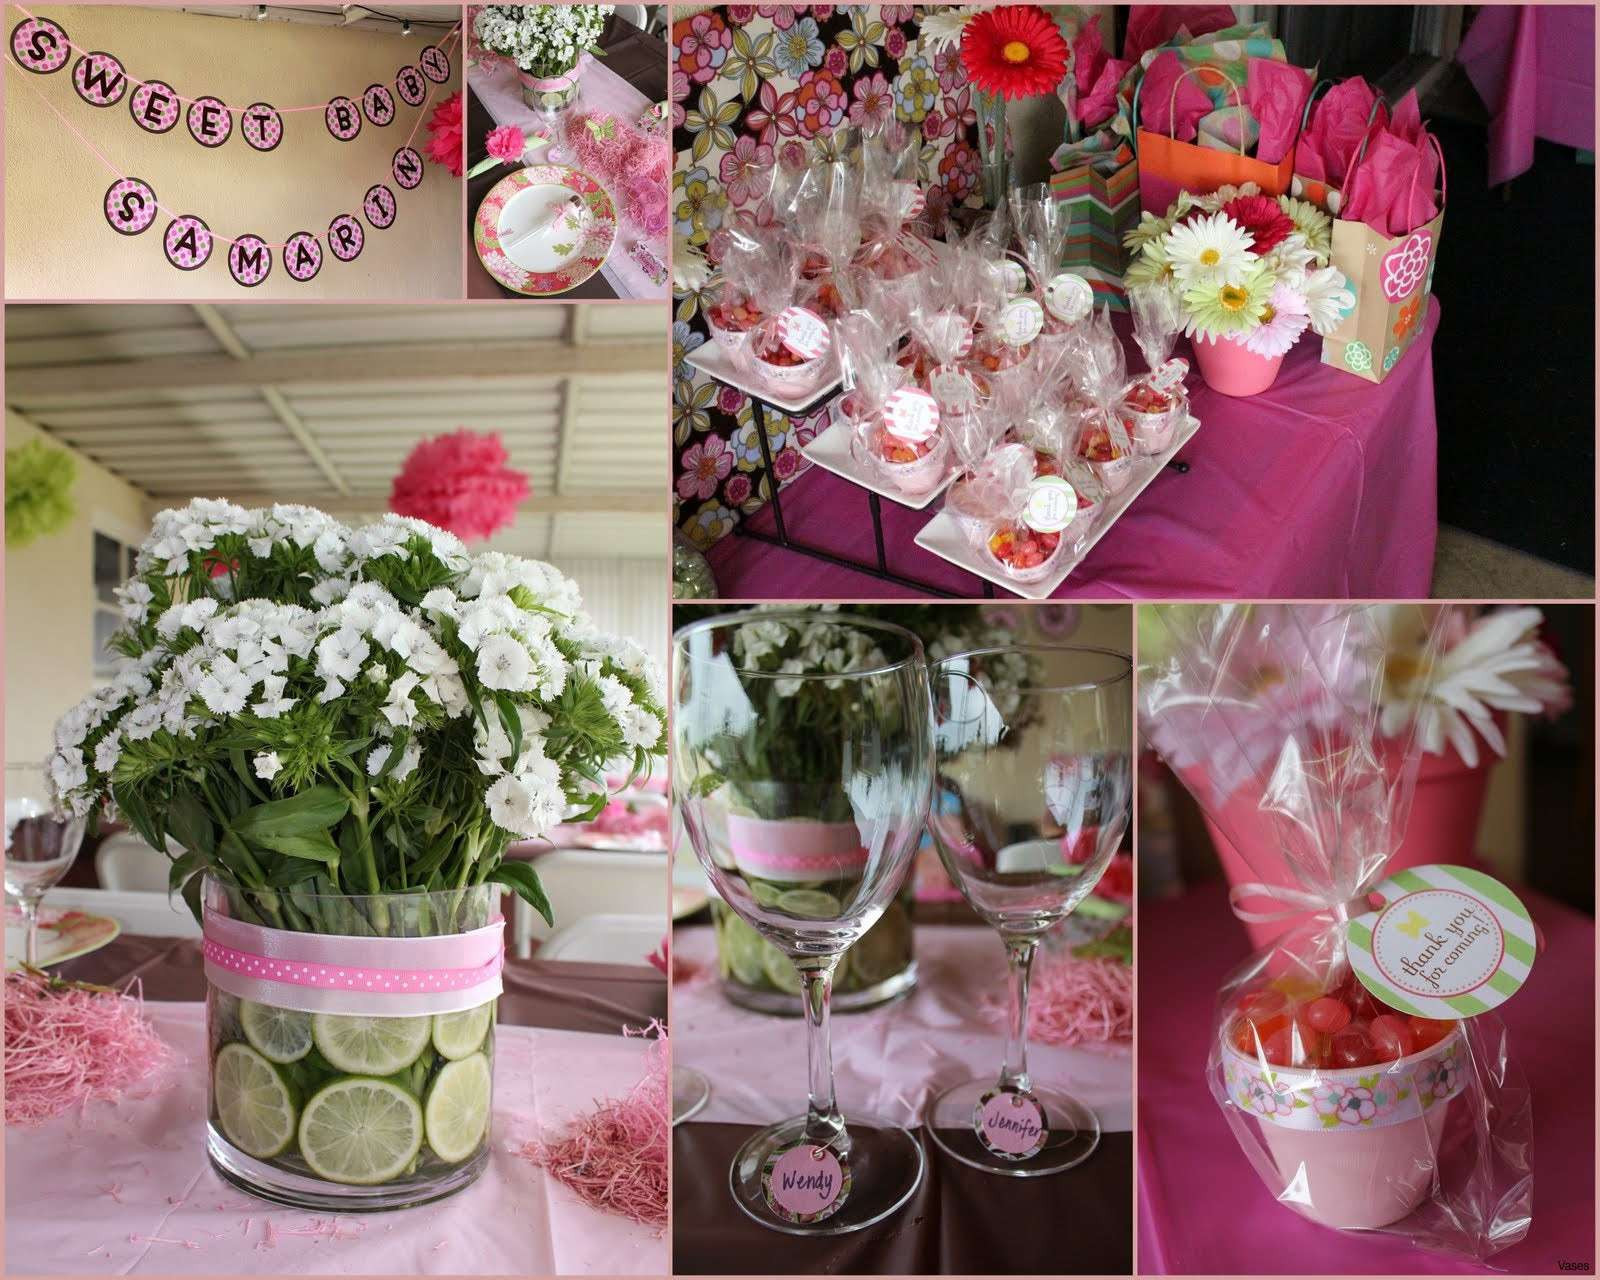 Large Square Vases Centerpieces Of 37 Amazing Table Shower Near Me Shower Curtains Ideas Design with Baby Shower Table Centerpiece Ideas Vases Baby Shower Flower Tutu Vase Centerpiece for A I 0d Design